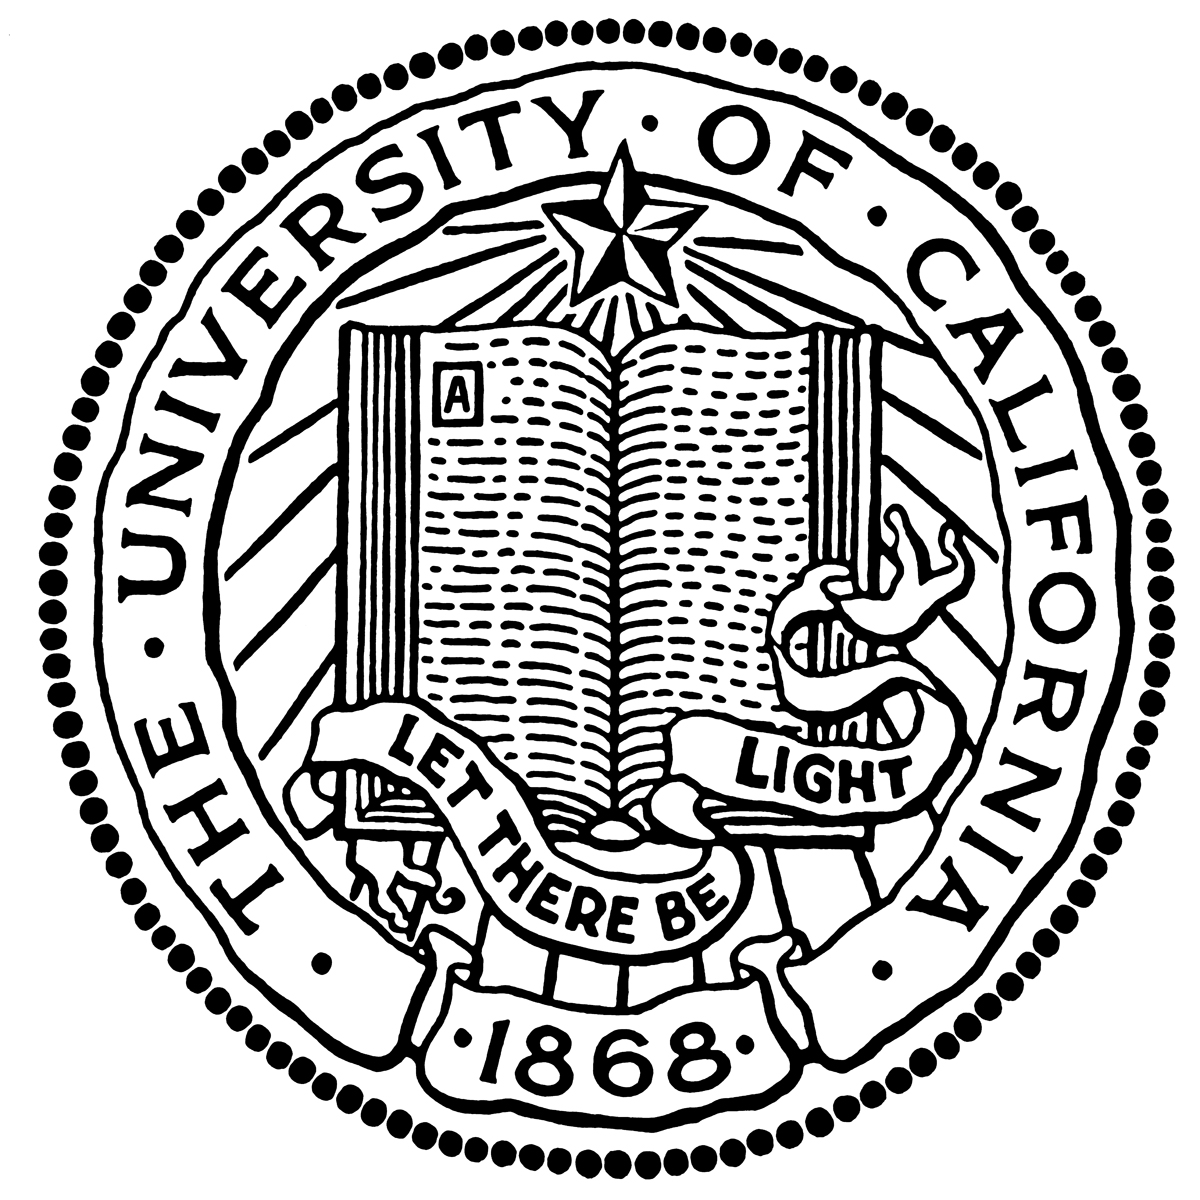 https://i1.wp.com/www.ucsf.edu/sites/default/files/legacy_files/seal_K.jpg